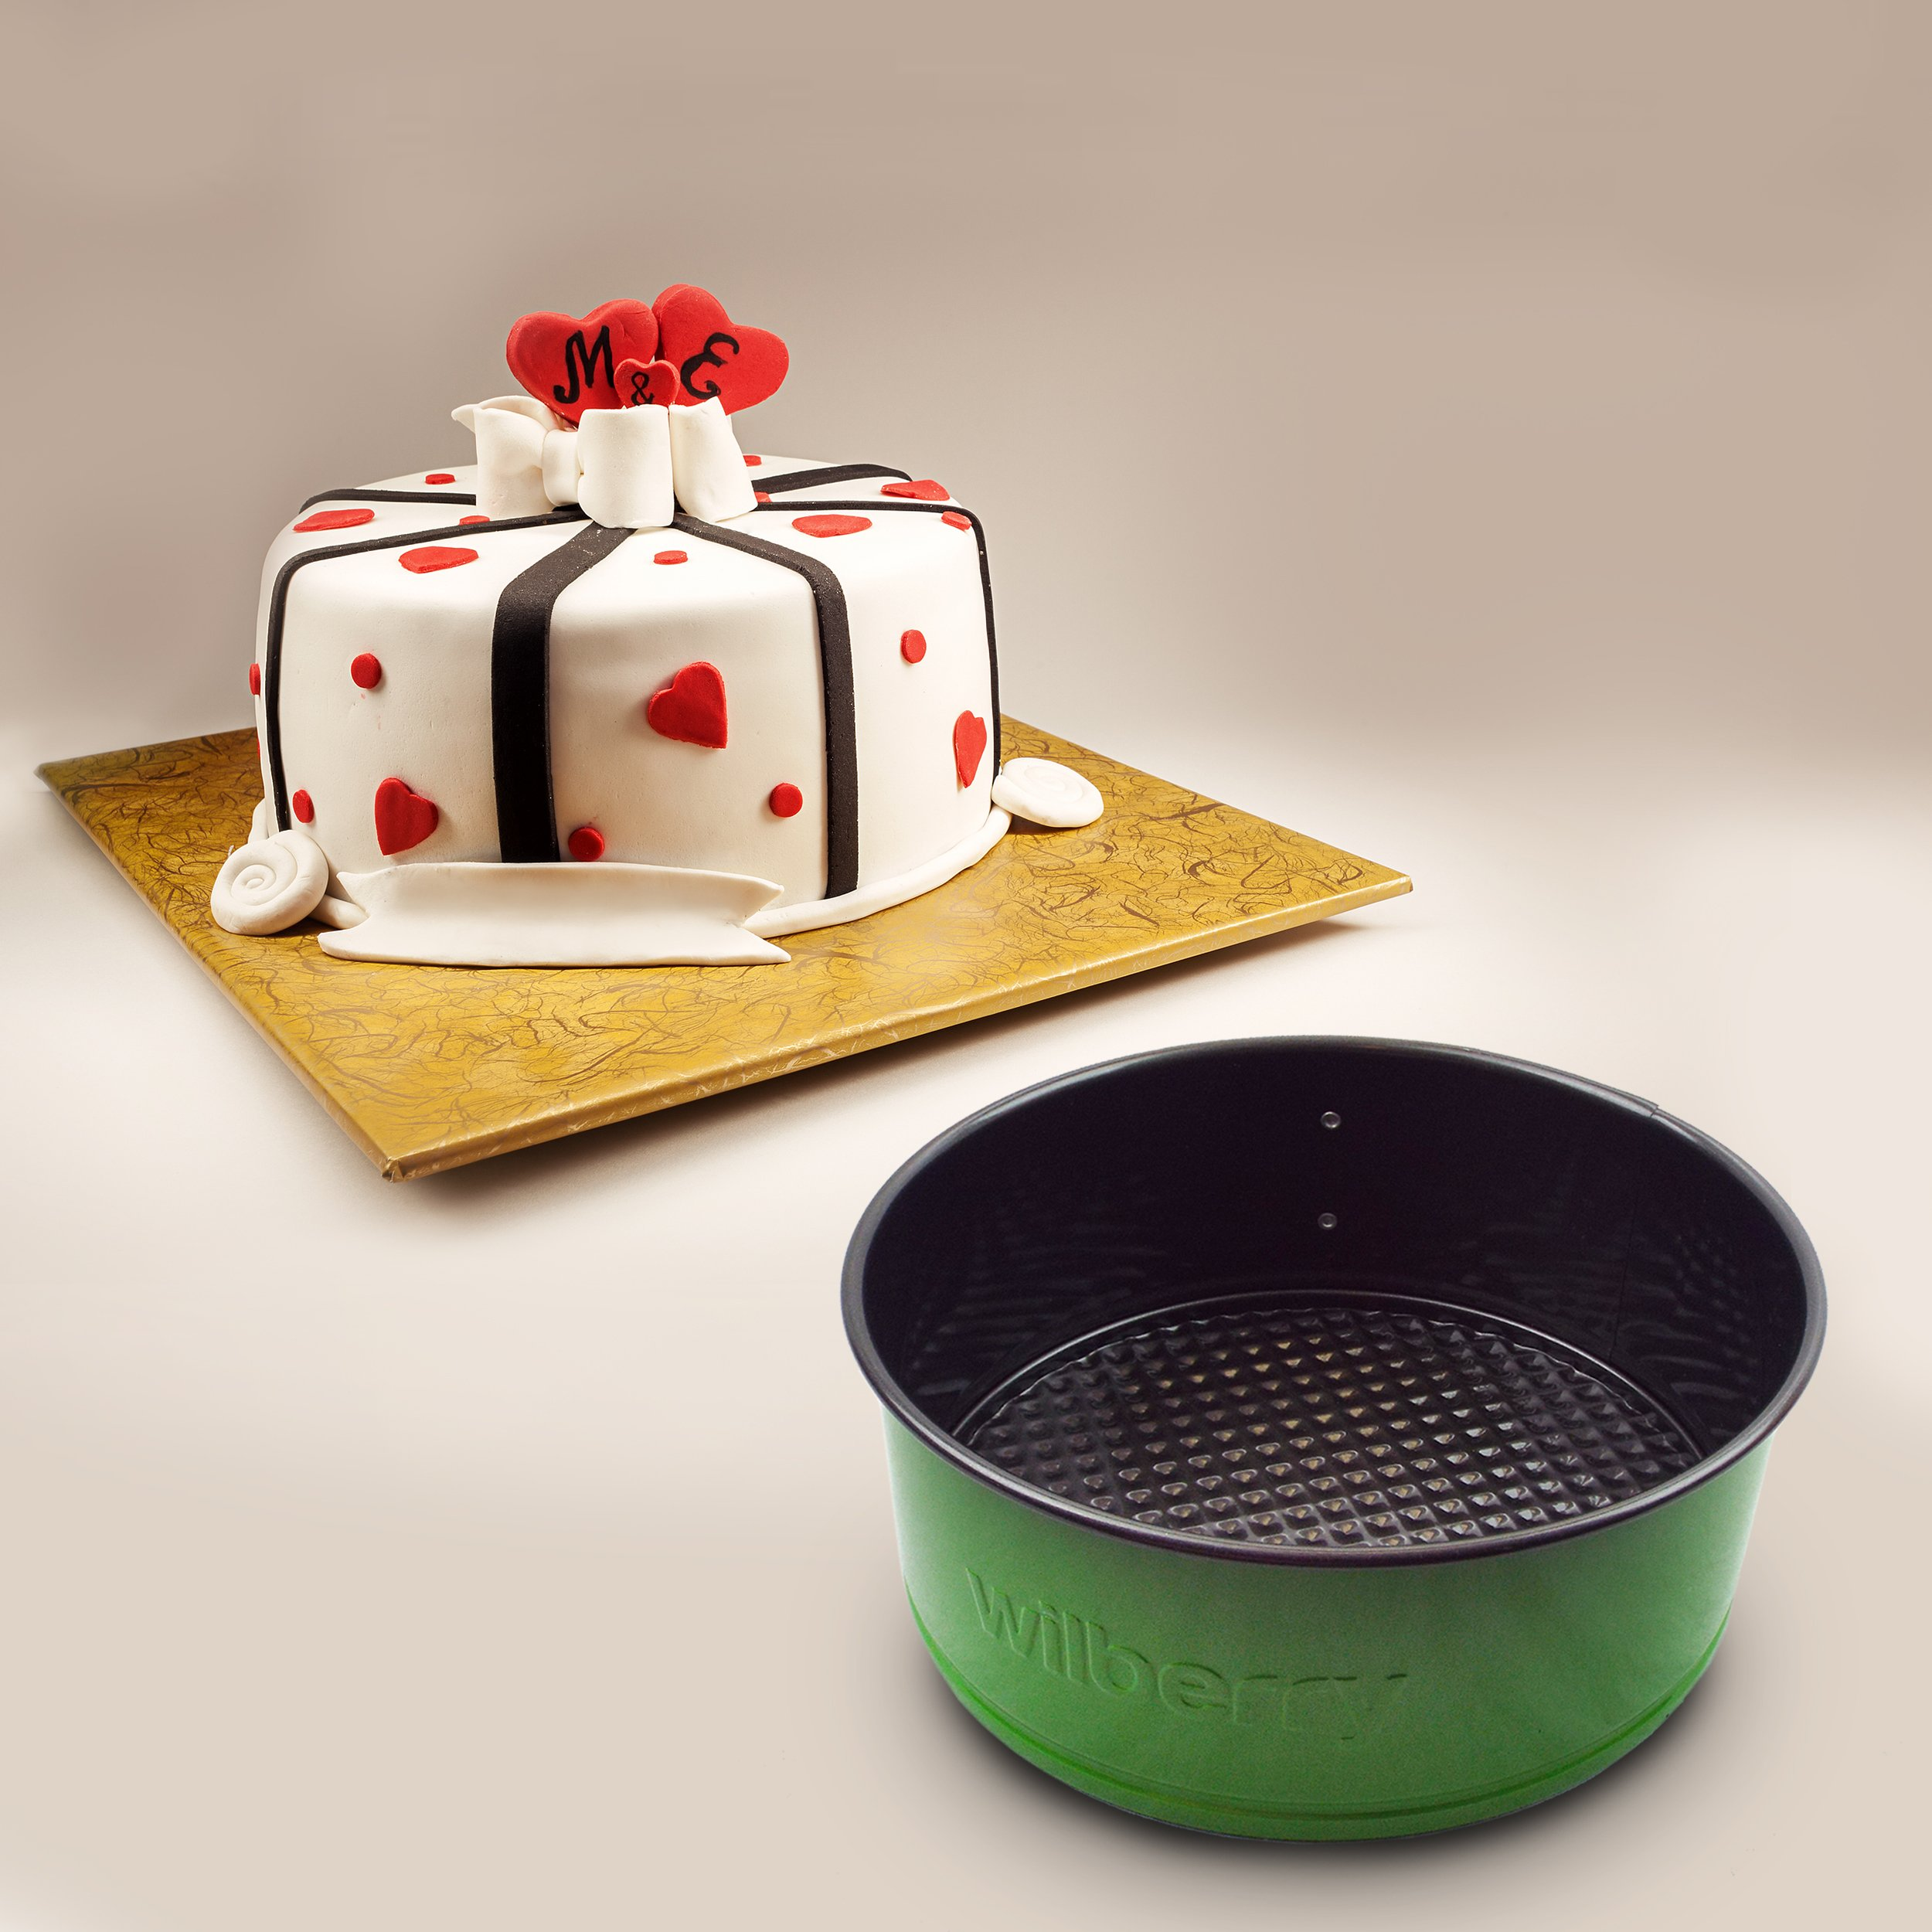 Springform Pans Set of 3   Two Round & One Heart-Shaped Cheesecake Pans   Leak Resistant & Top Rack Dishwasher Safe by Wilberry (Image #5)